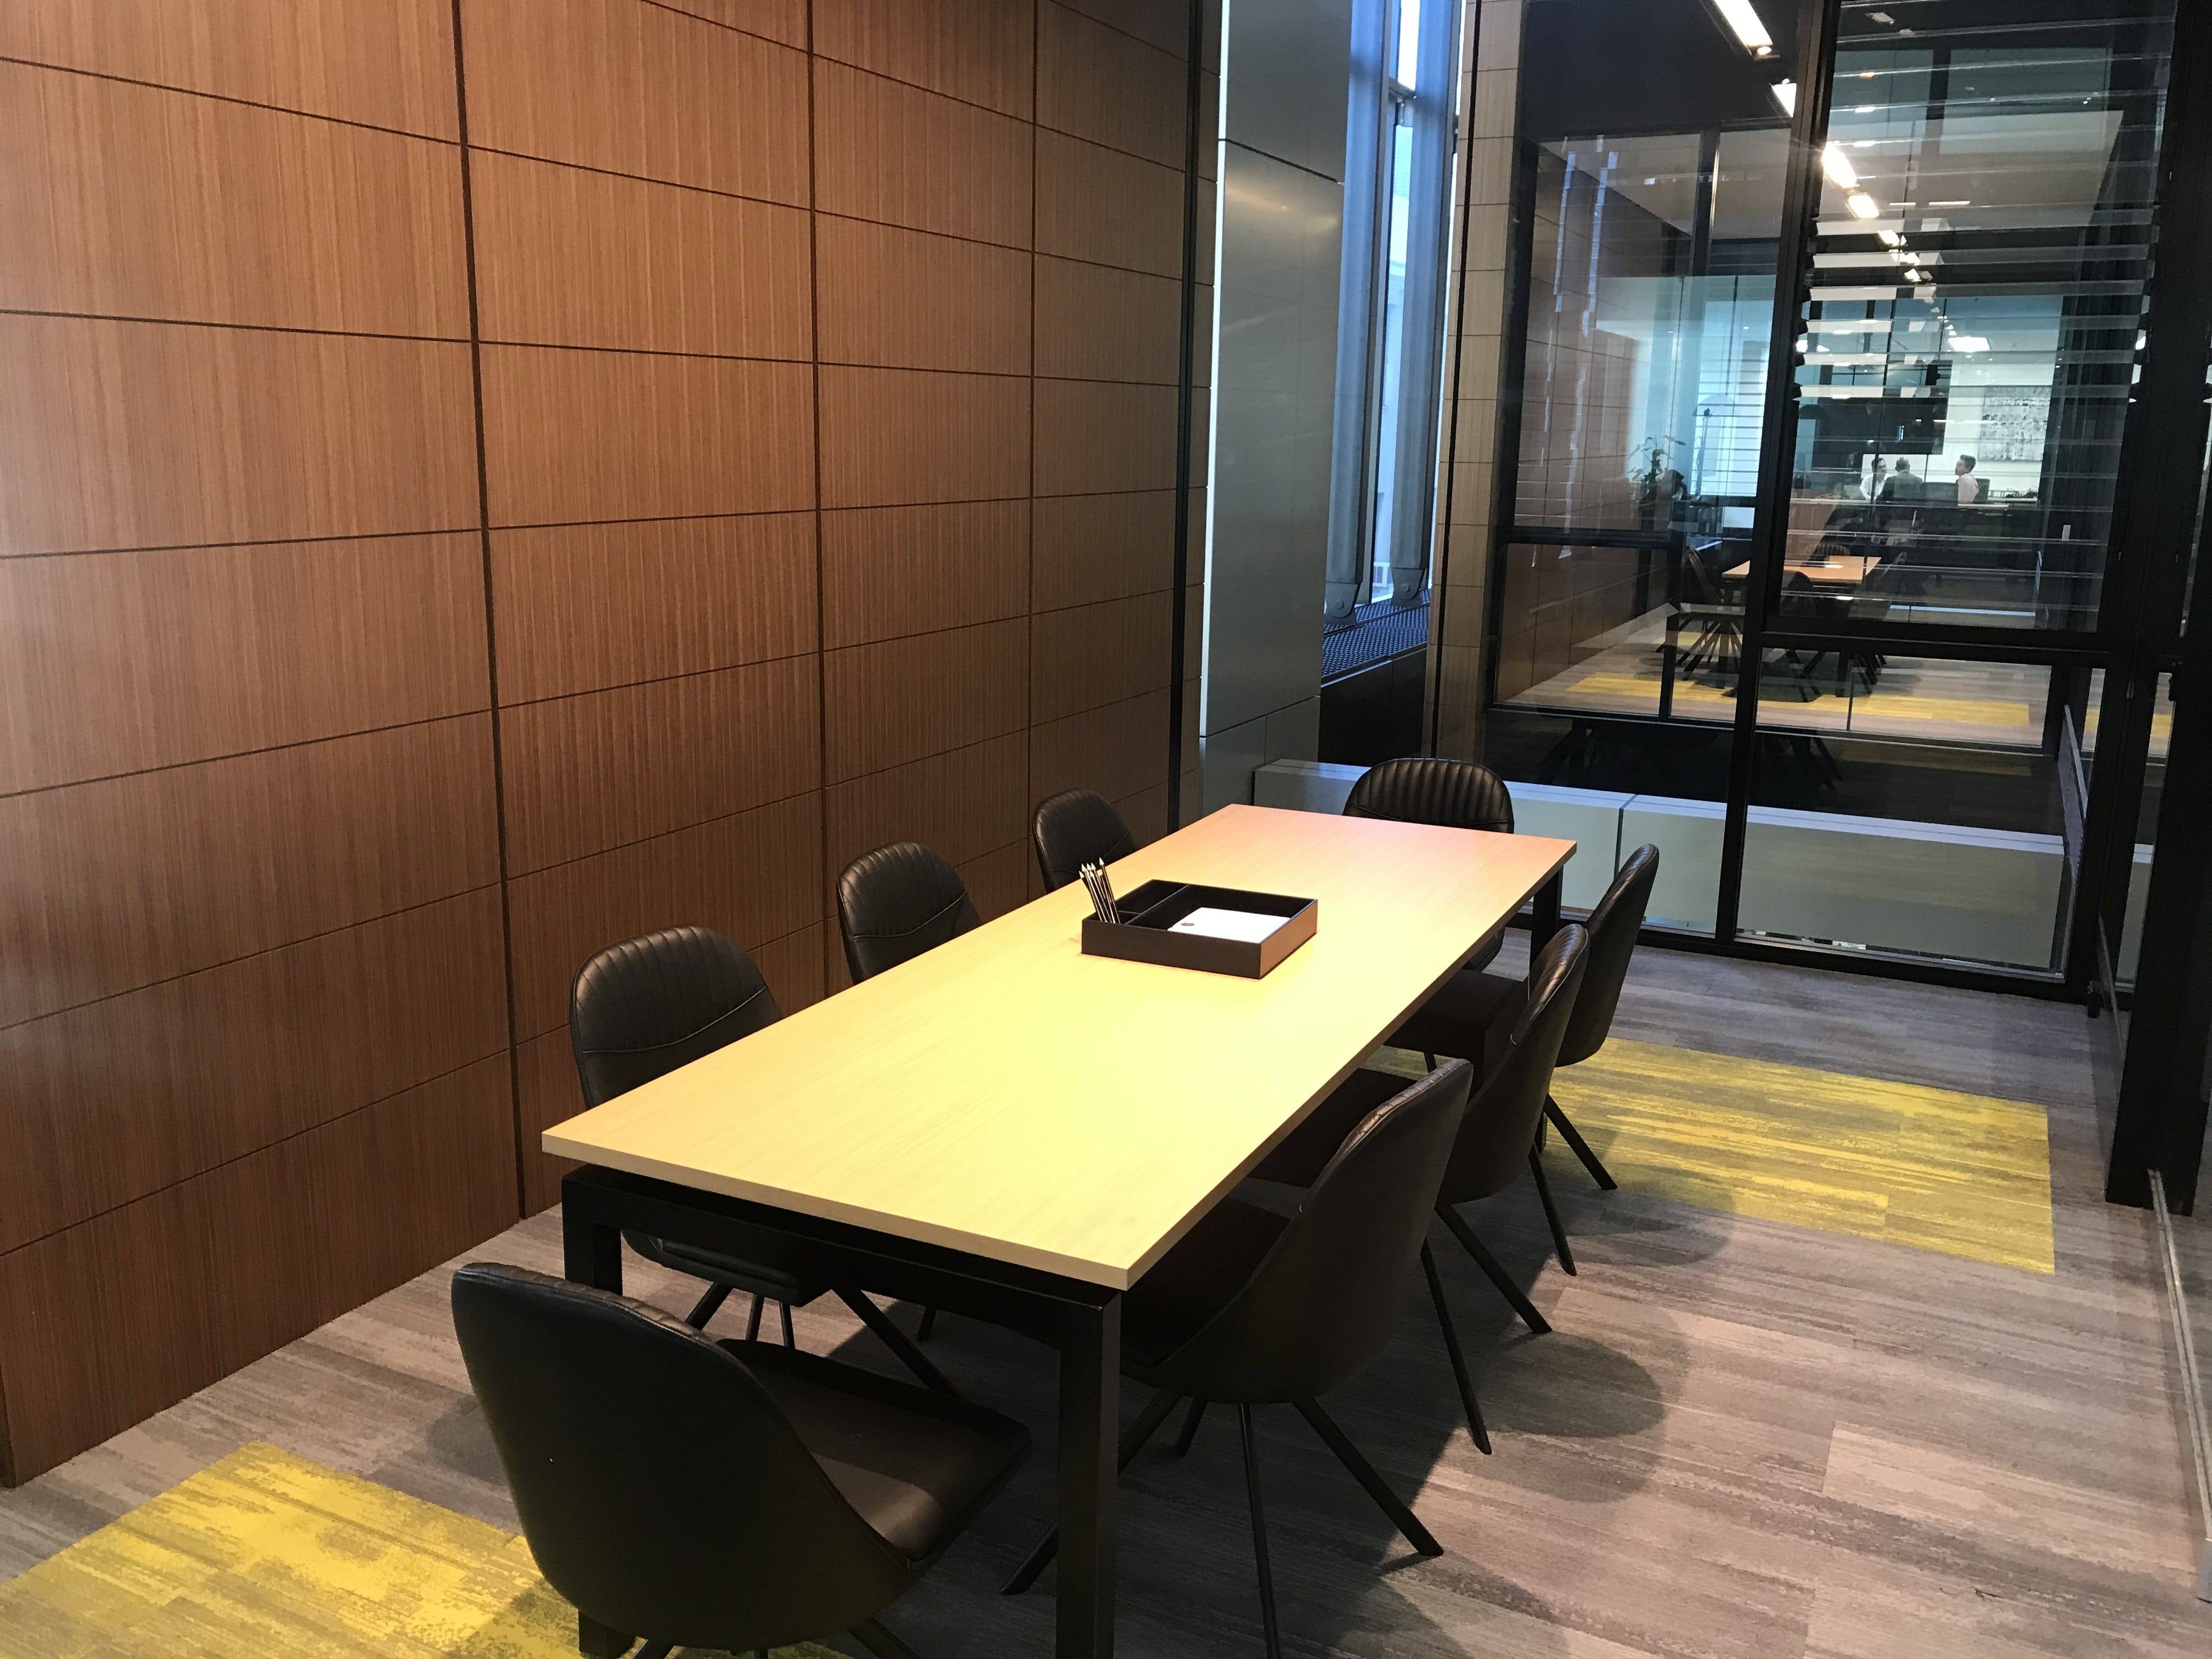 Aero Meeting Room, meeting room at Victory Offices   Level 10, 420 George Street, image 1